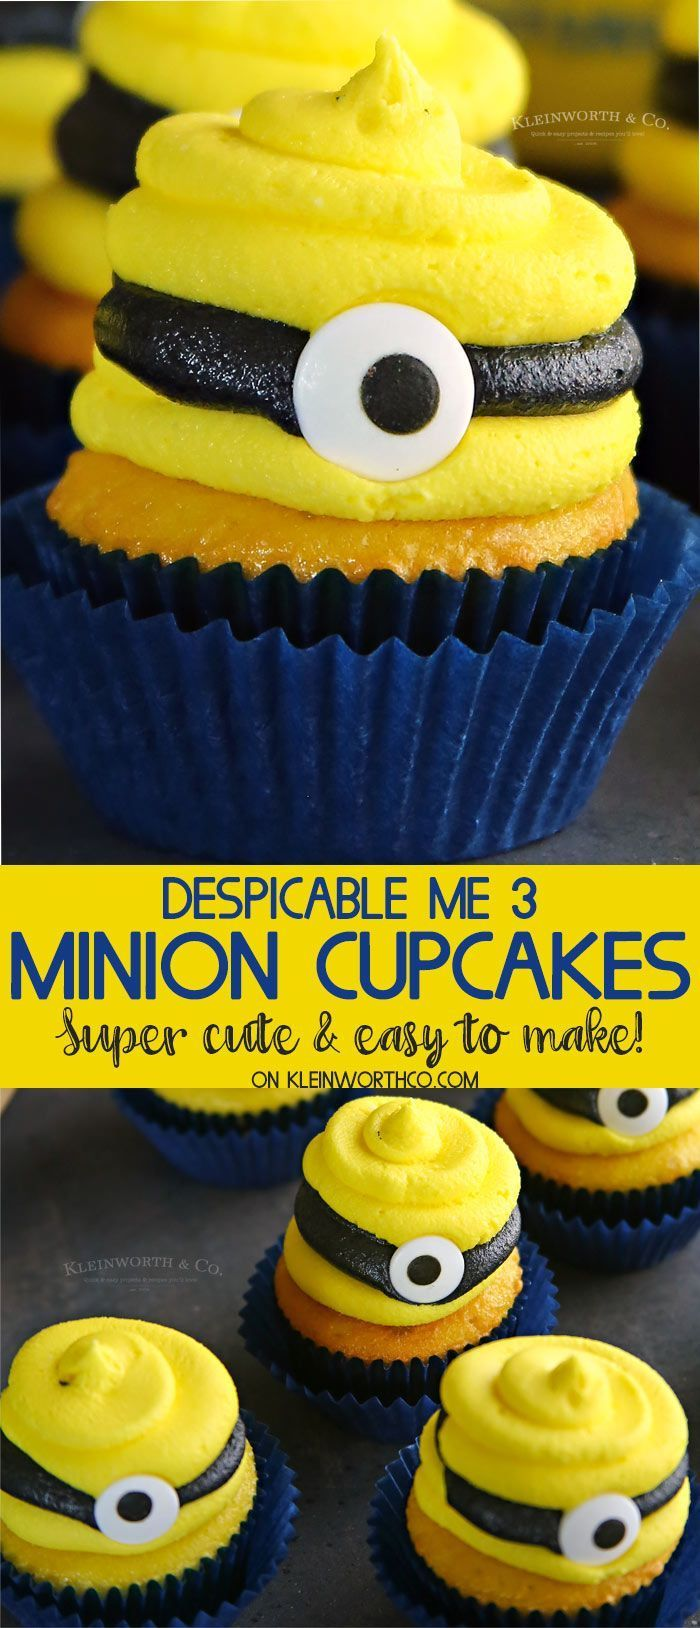 Despicable Me 3 Minion Cupcakes are the perfect for celebrating the release of the Despicable Me 3 Movie or hosting a Despicable Me themed party. Fun! via @KleinworthCo